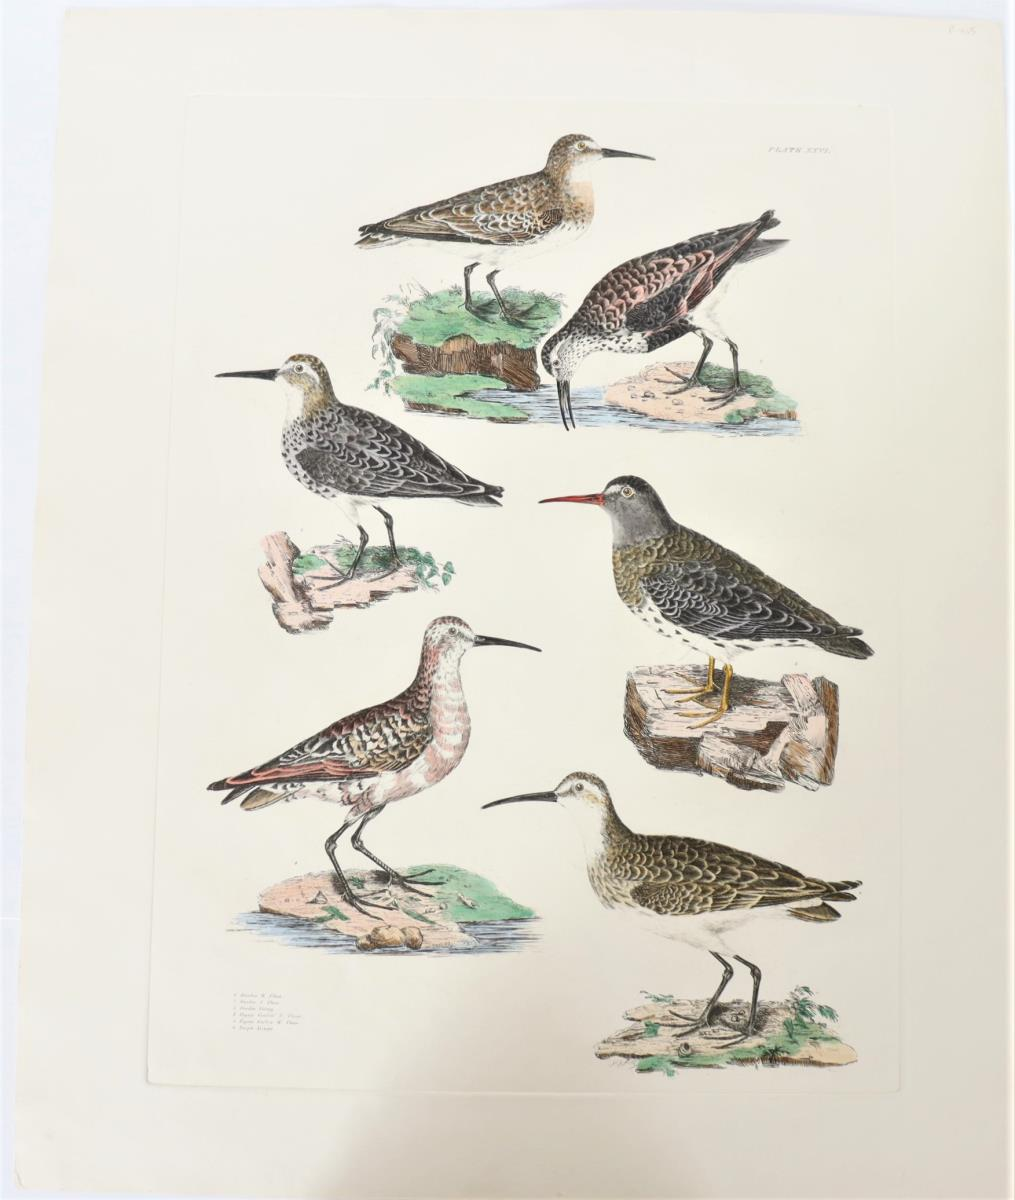 P J Selby, Hand-Colored Engraving, Dunlin, Curlew - Image 2 of 4